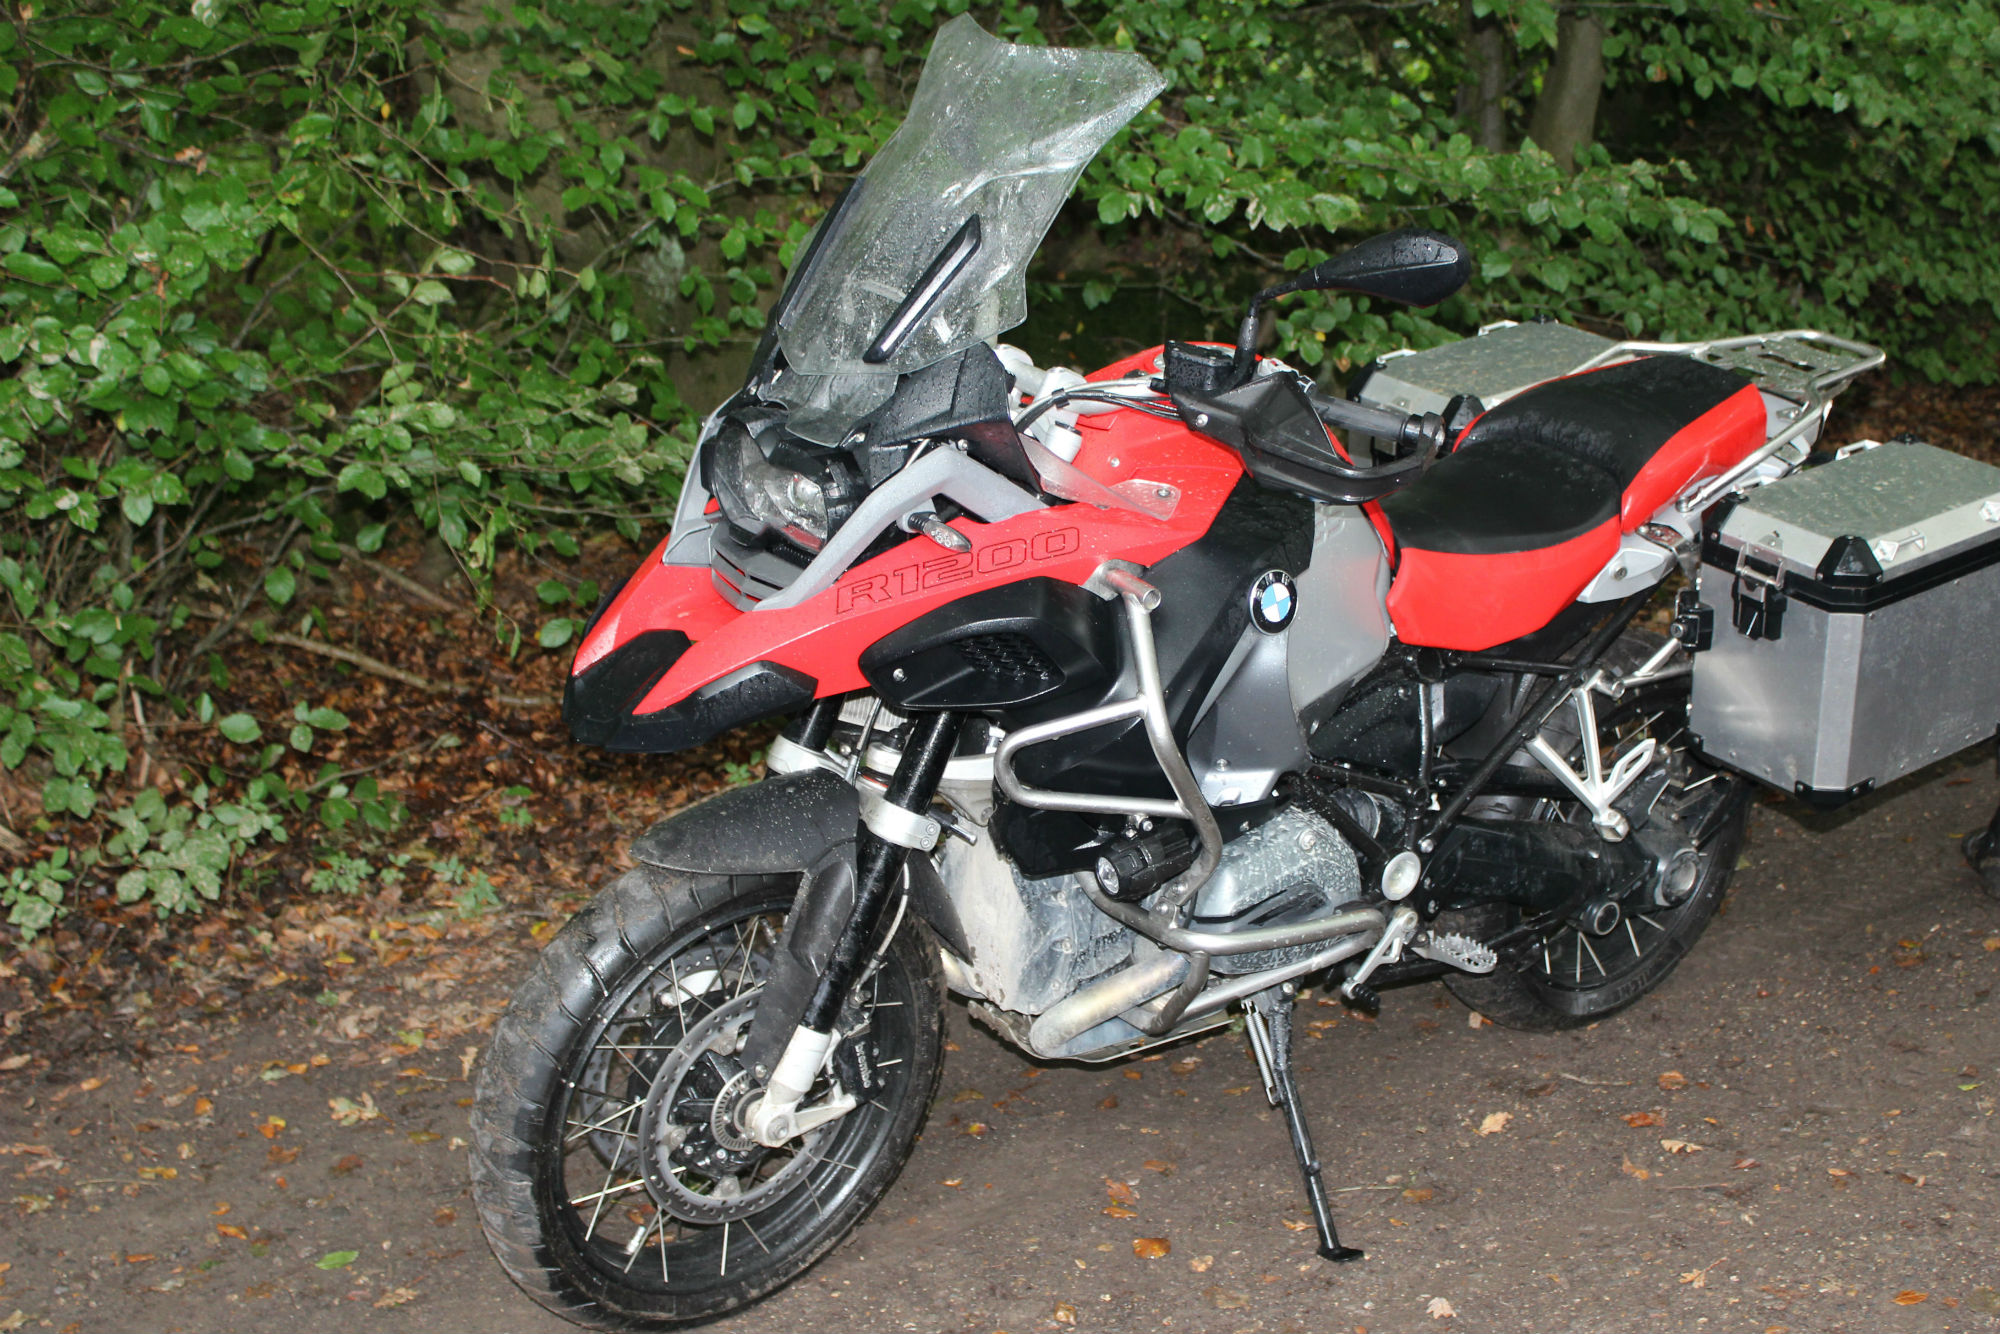 BMW%20R%201200%20GS%20Adventure Exciting Bmw R 1200 Cl forum Cars Trend